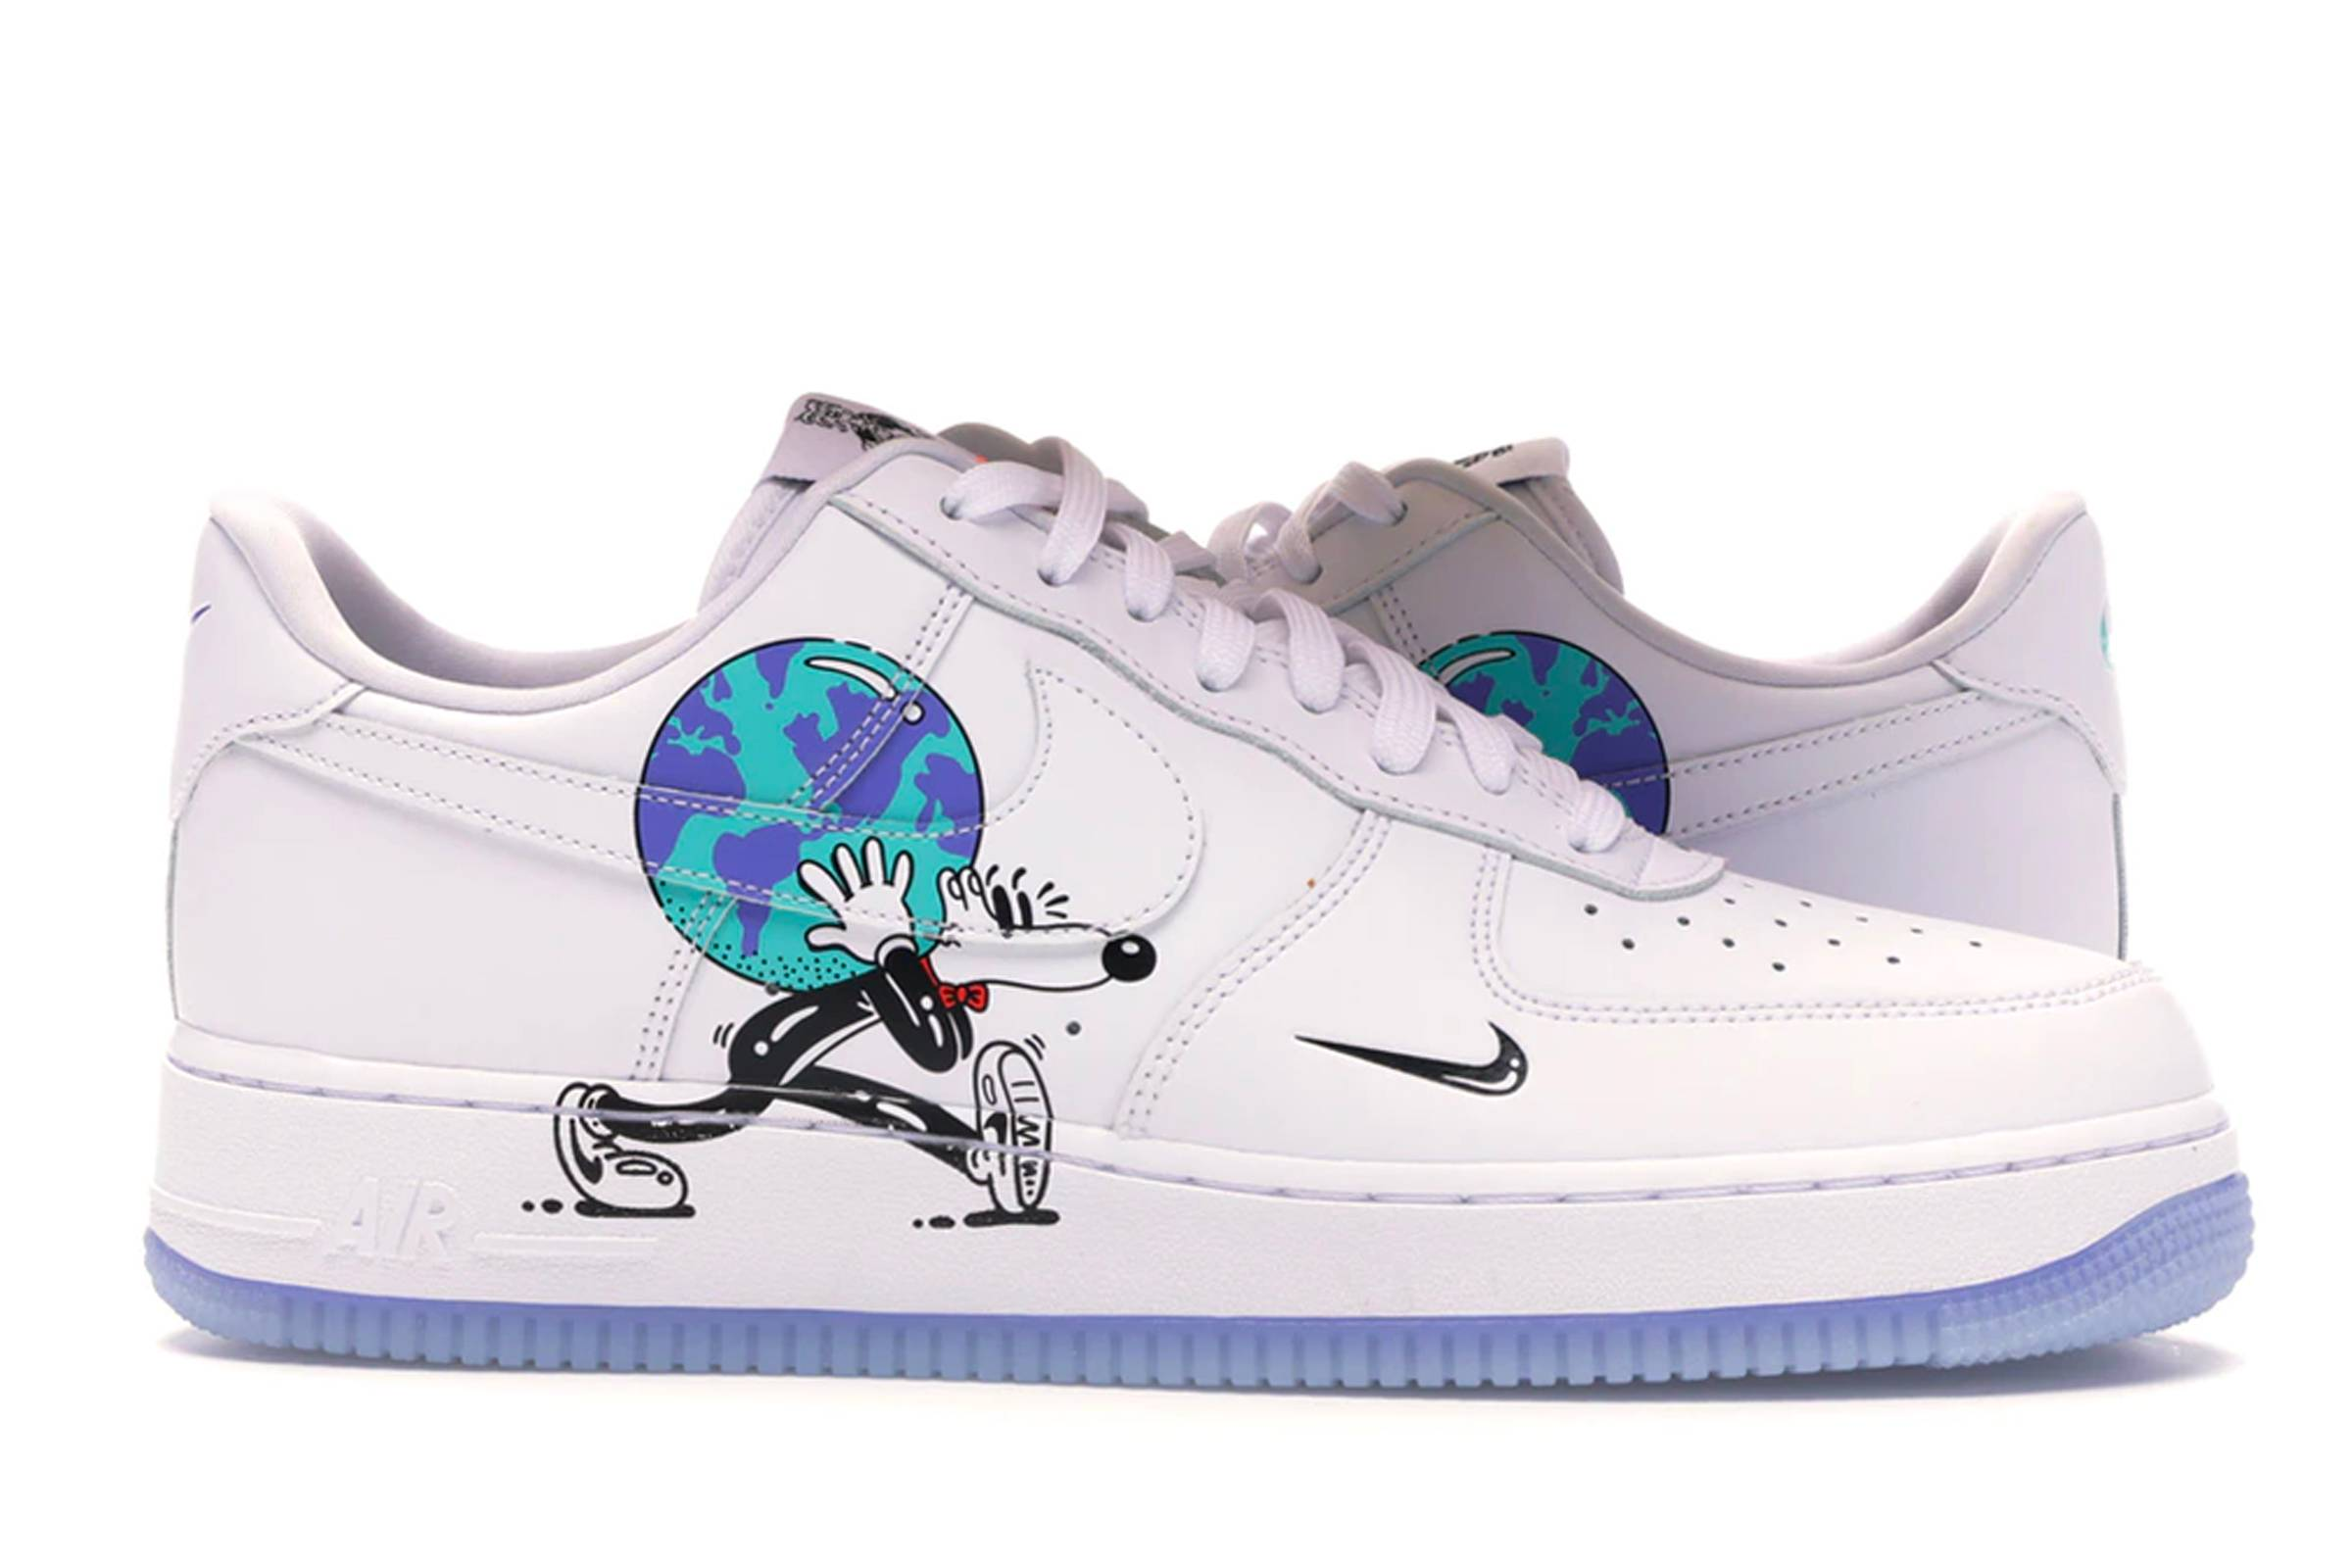 "Steven Harrington x Nike Air Force 1 Low Flyleather QS ""Earth Day"""